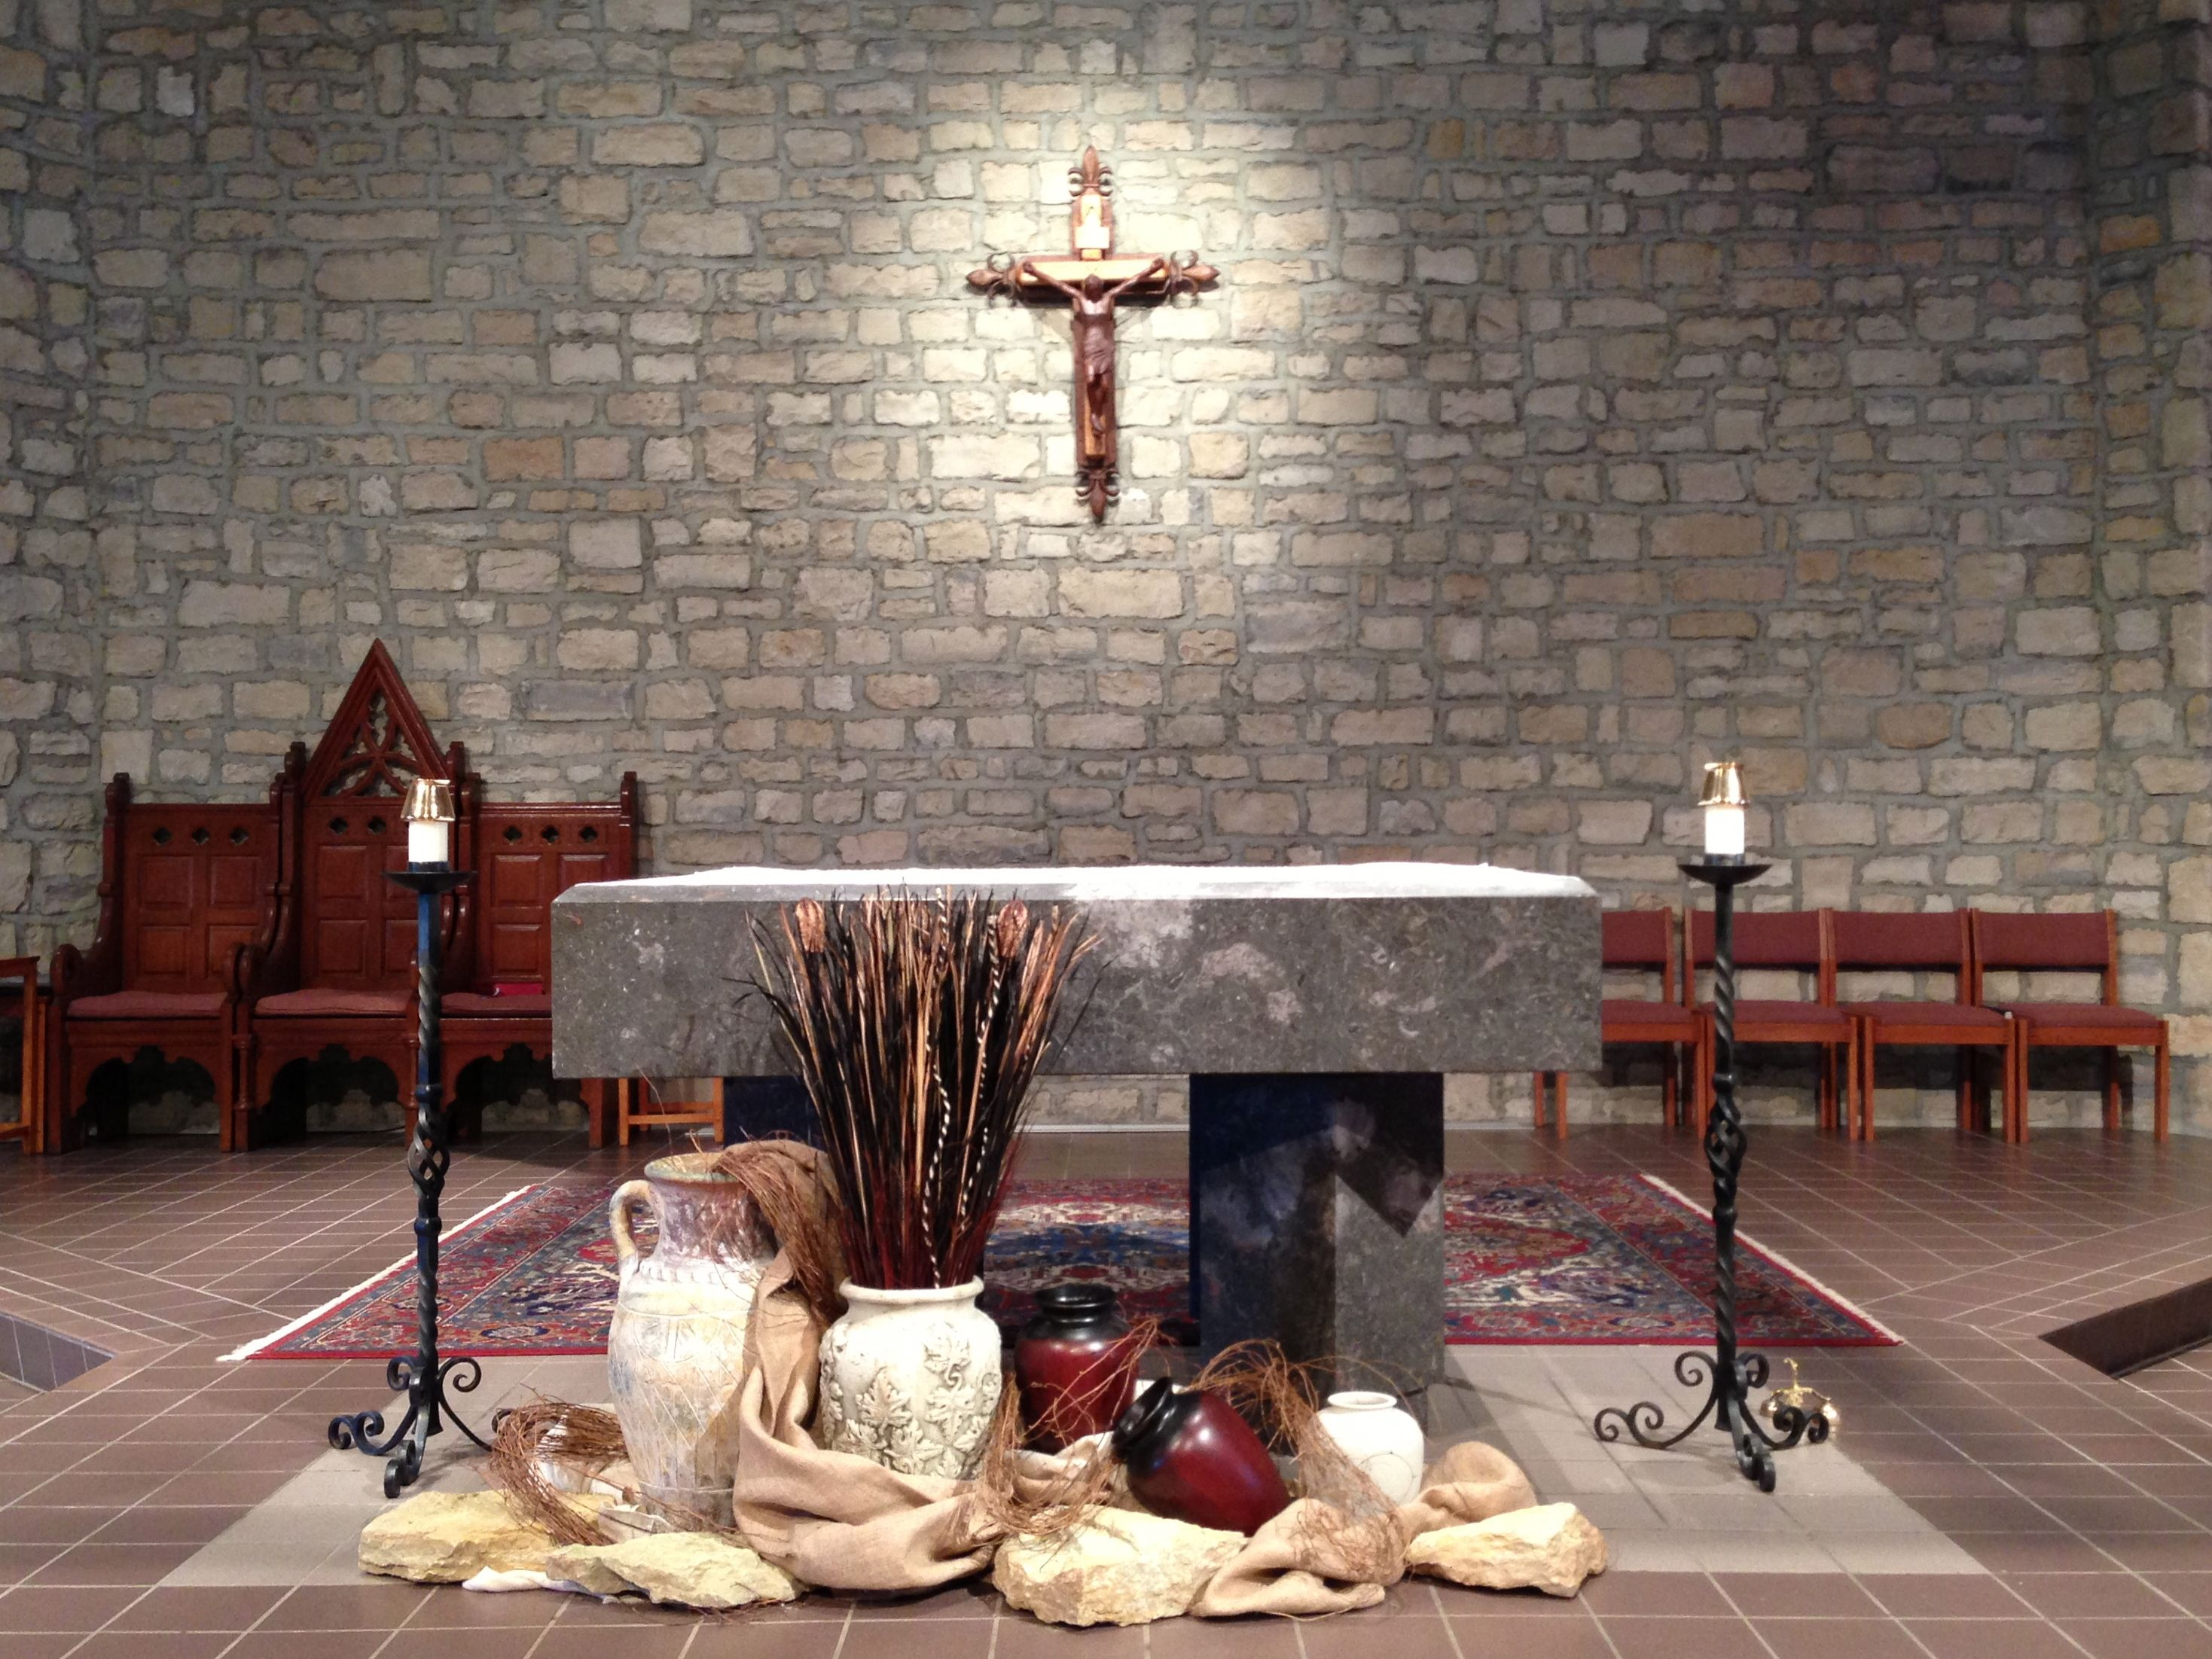 Ideas for decorating catholic altar for advent joy for Lent decorations for home